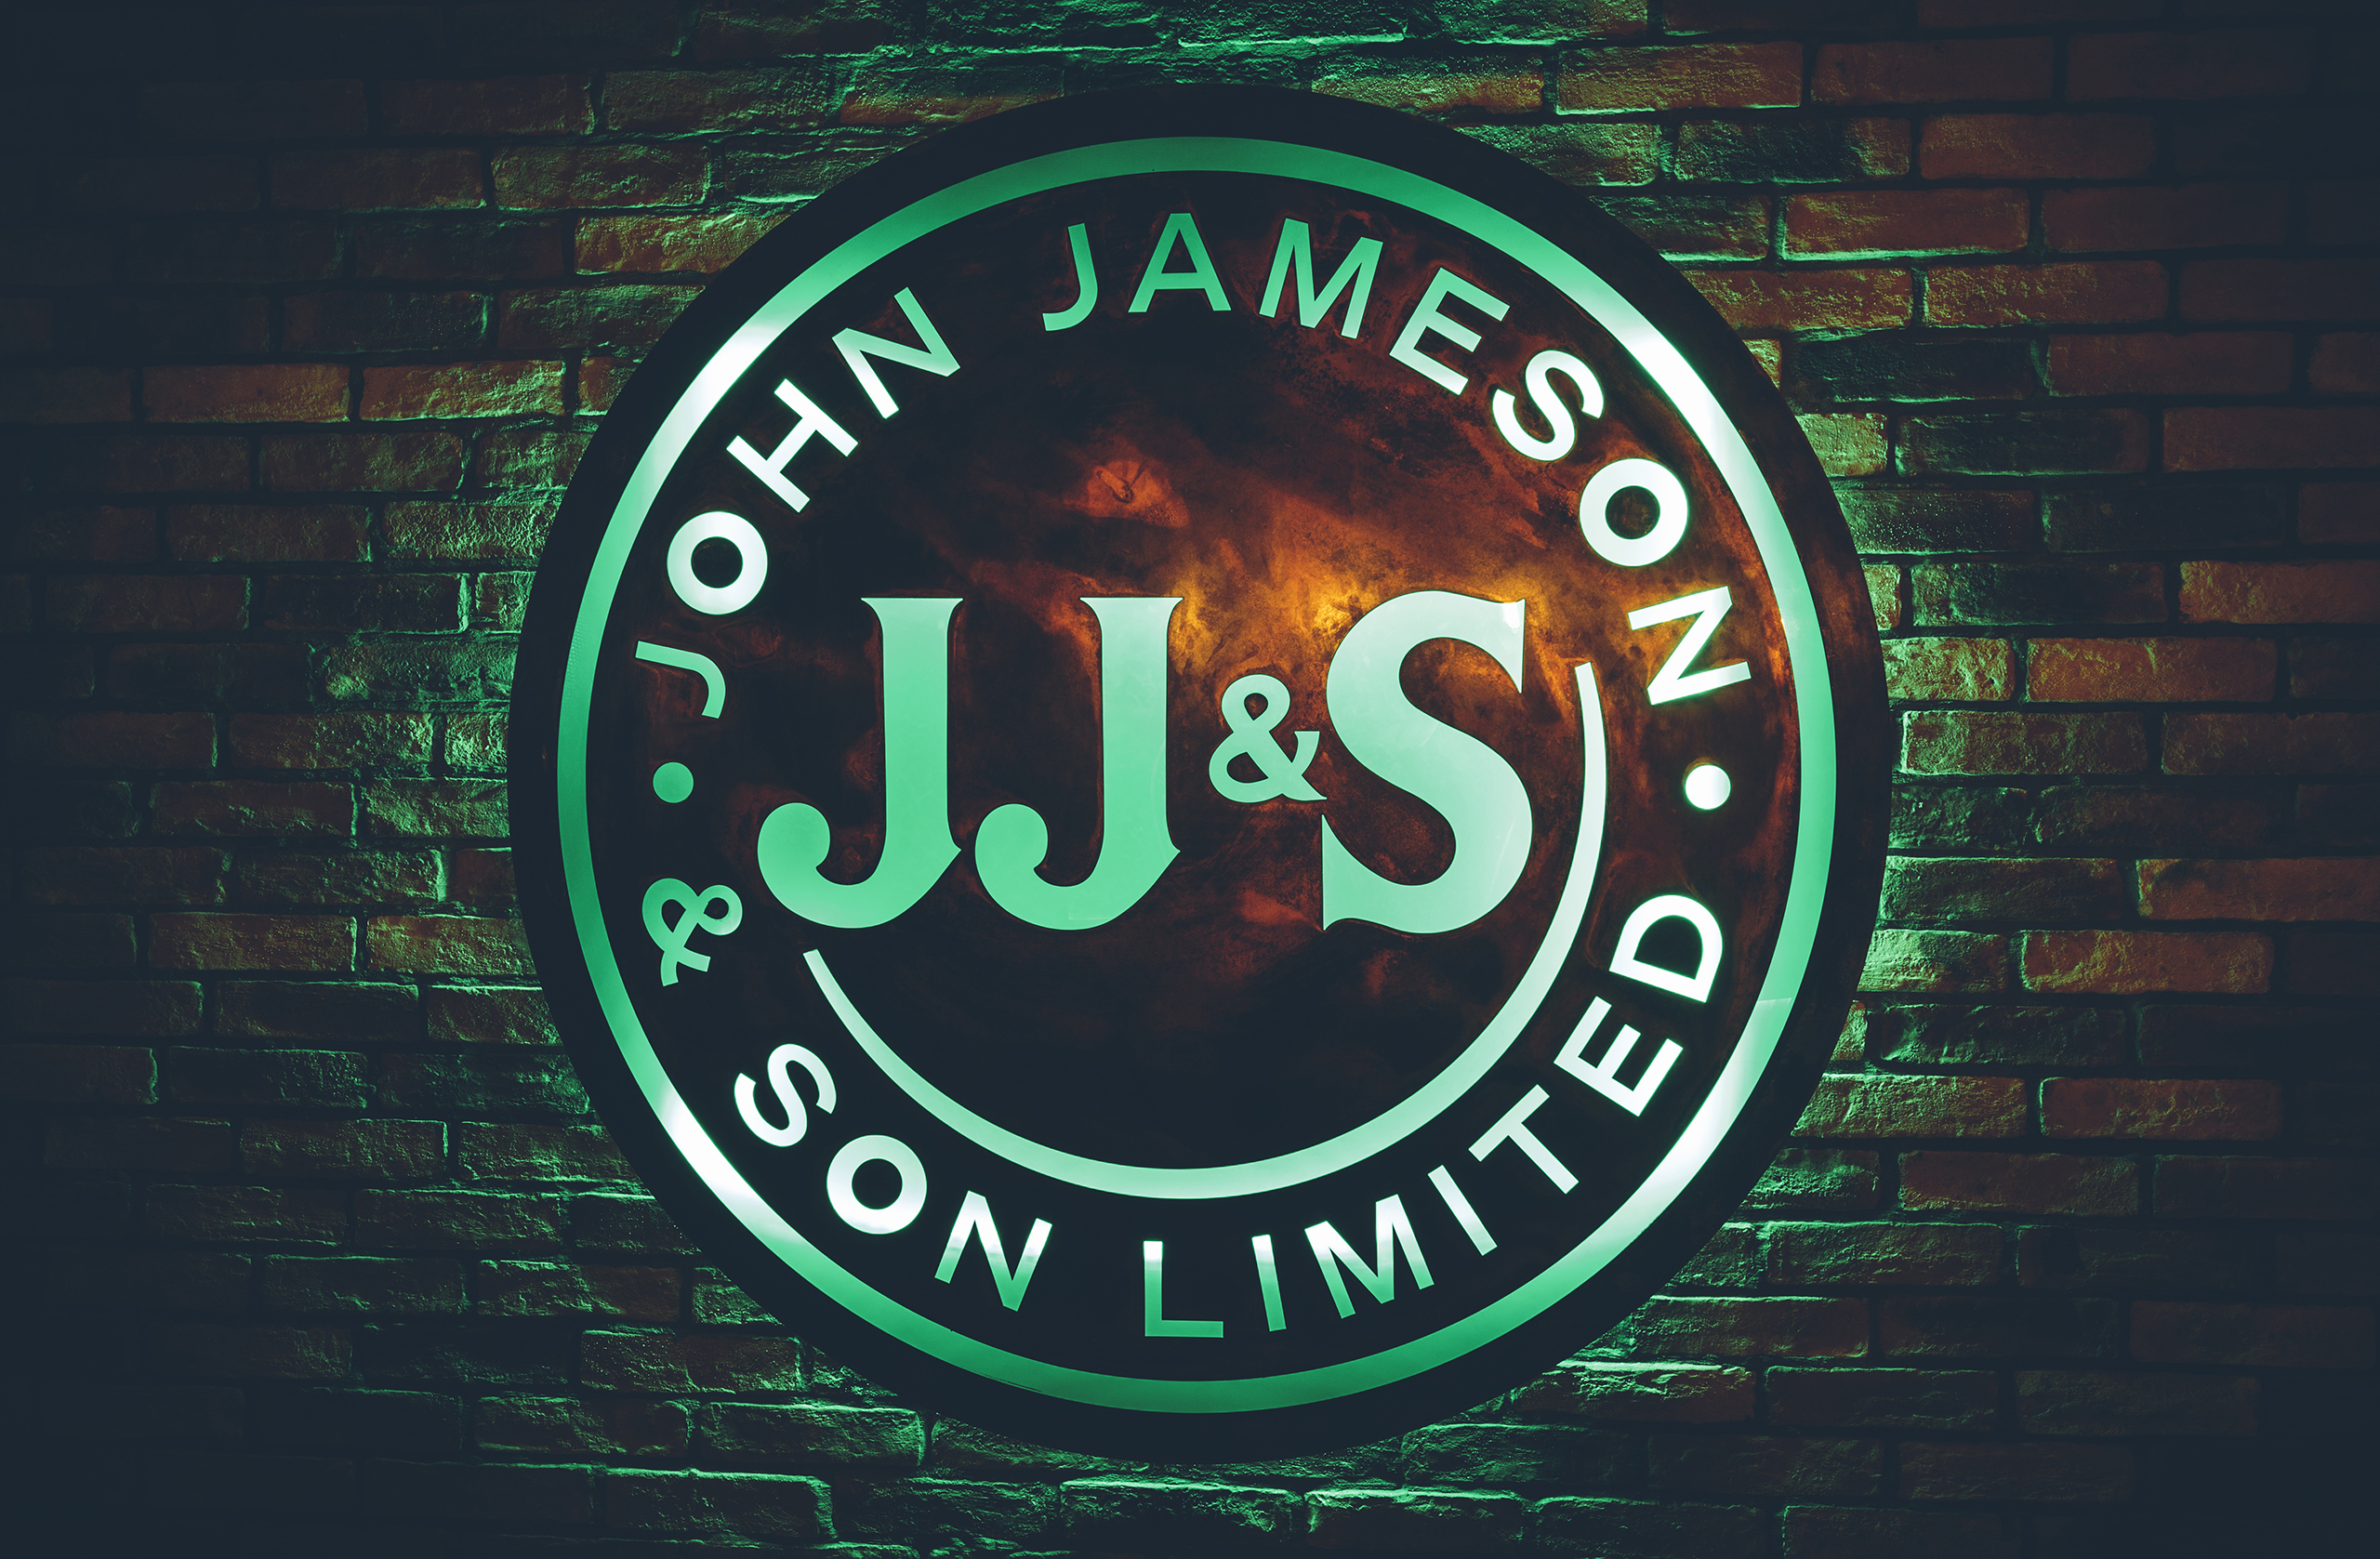 Jameson Whiskey Signage